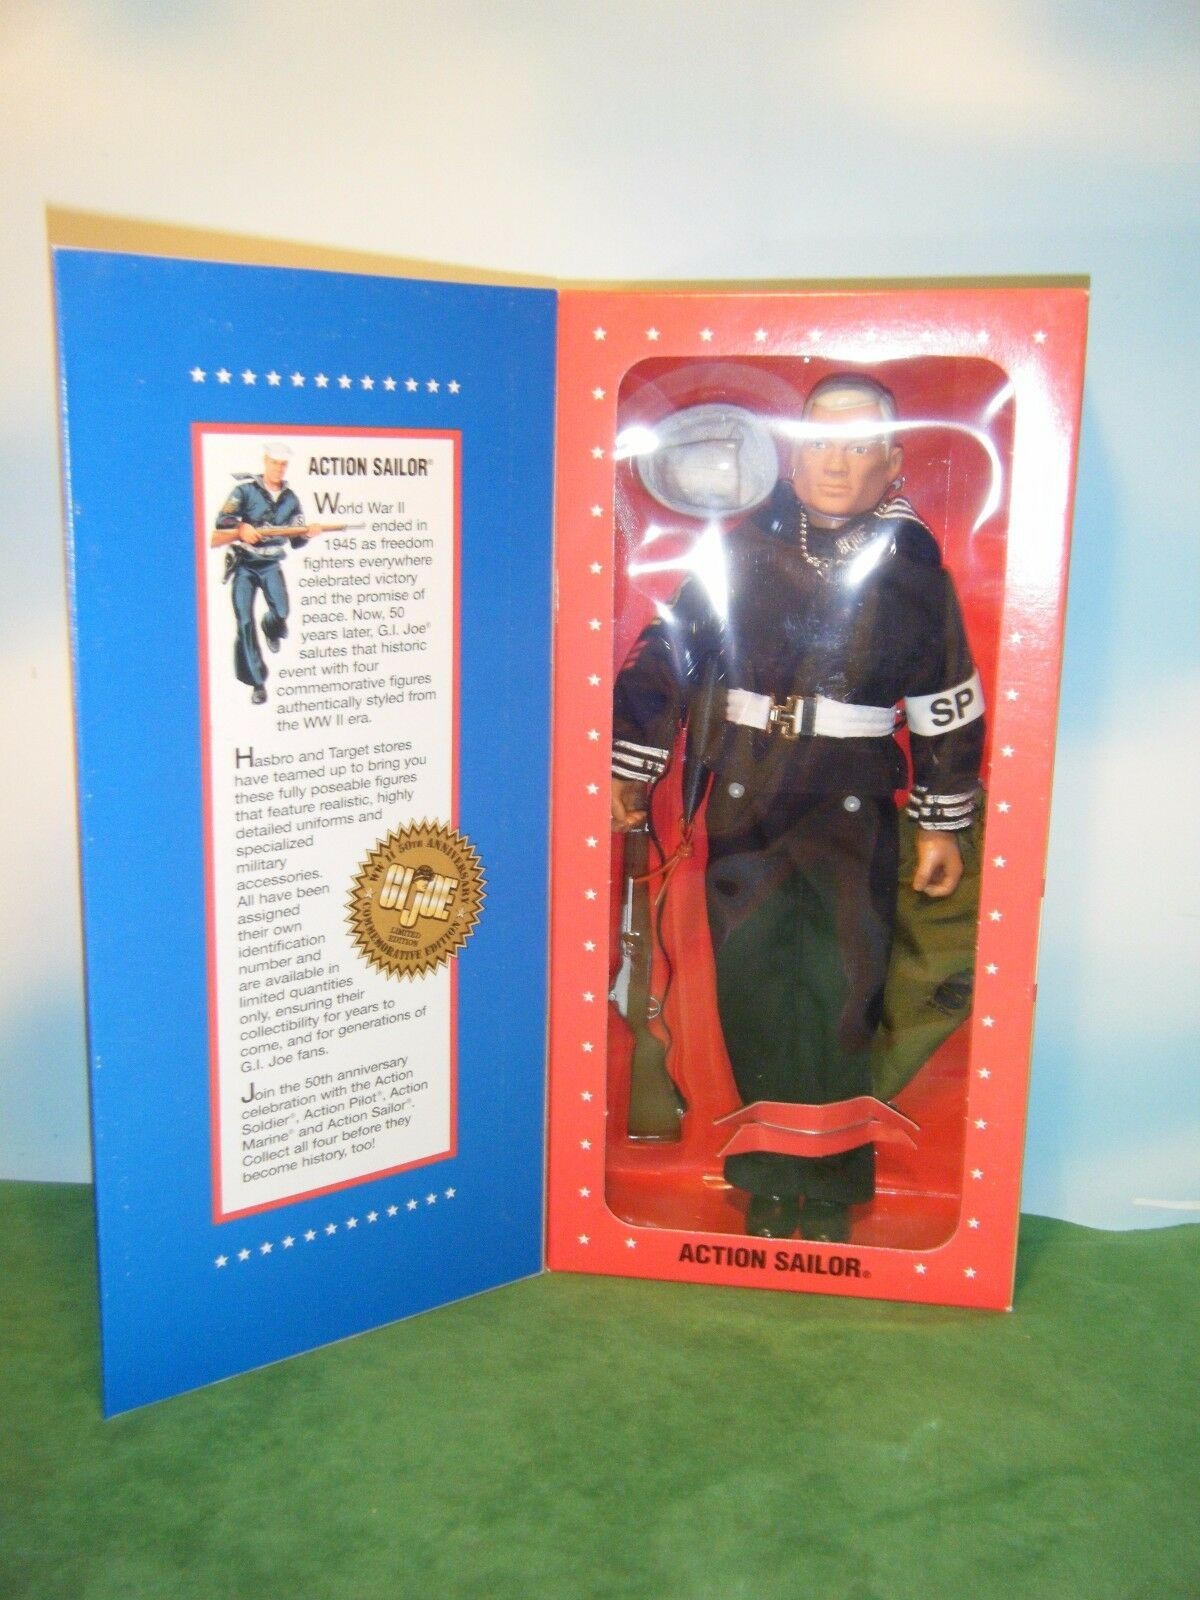 GI JOE ACTION SAILOR L.E. WWII 50TH ANNIVERSARY 12  FIGURE  176882 *NEW*